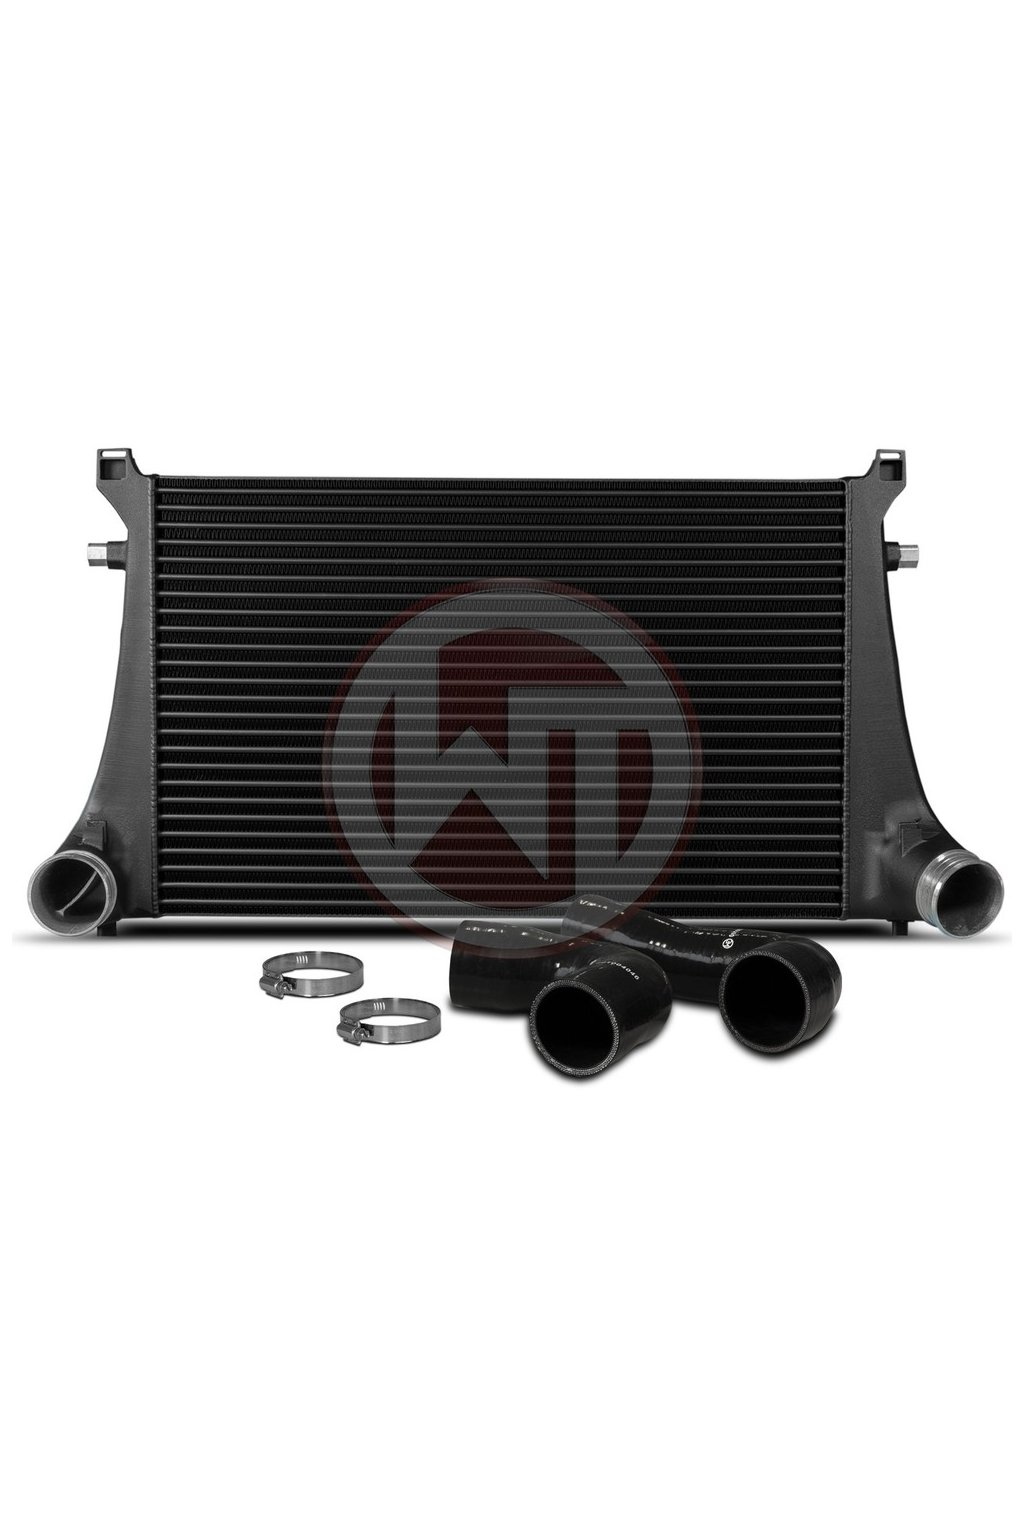 Wagner Tuning intercooler kit 2.0TSI MQB